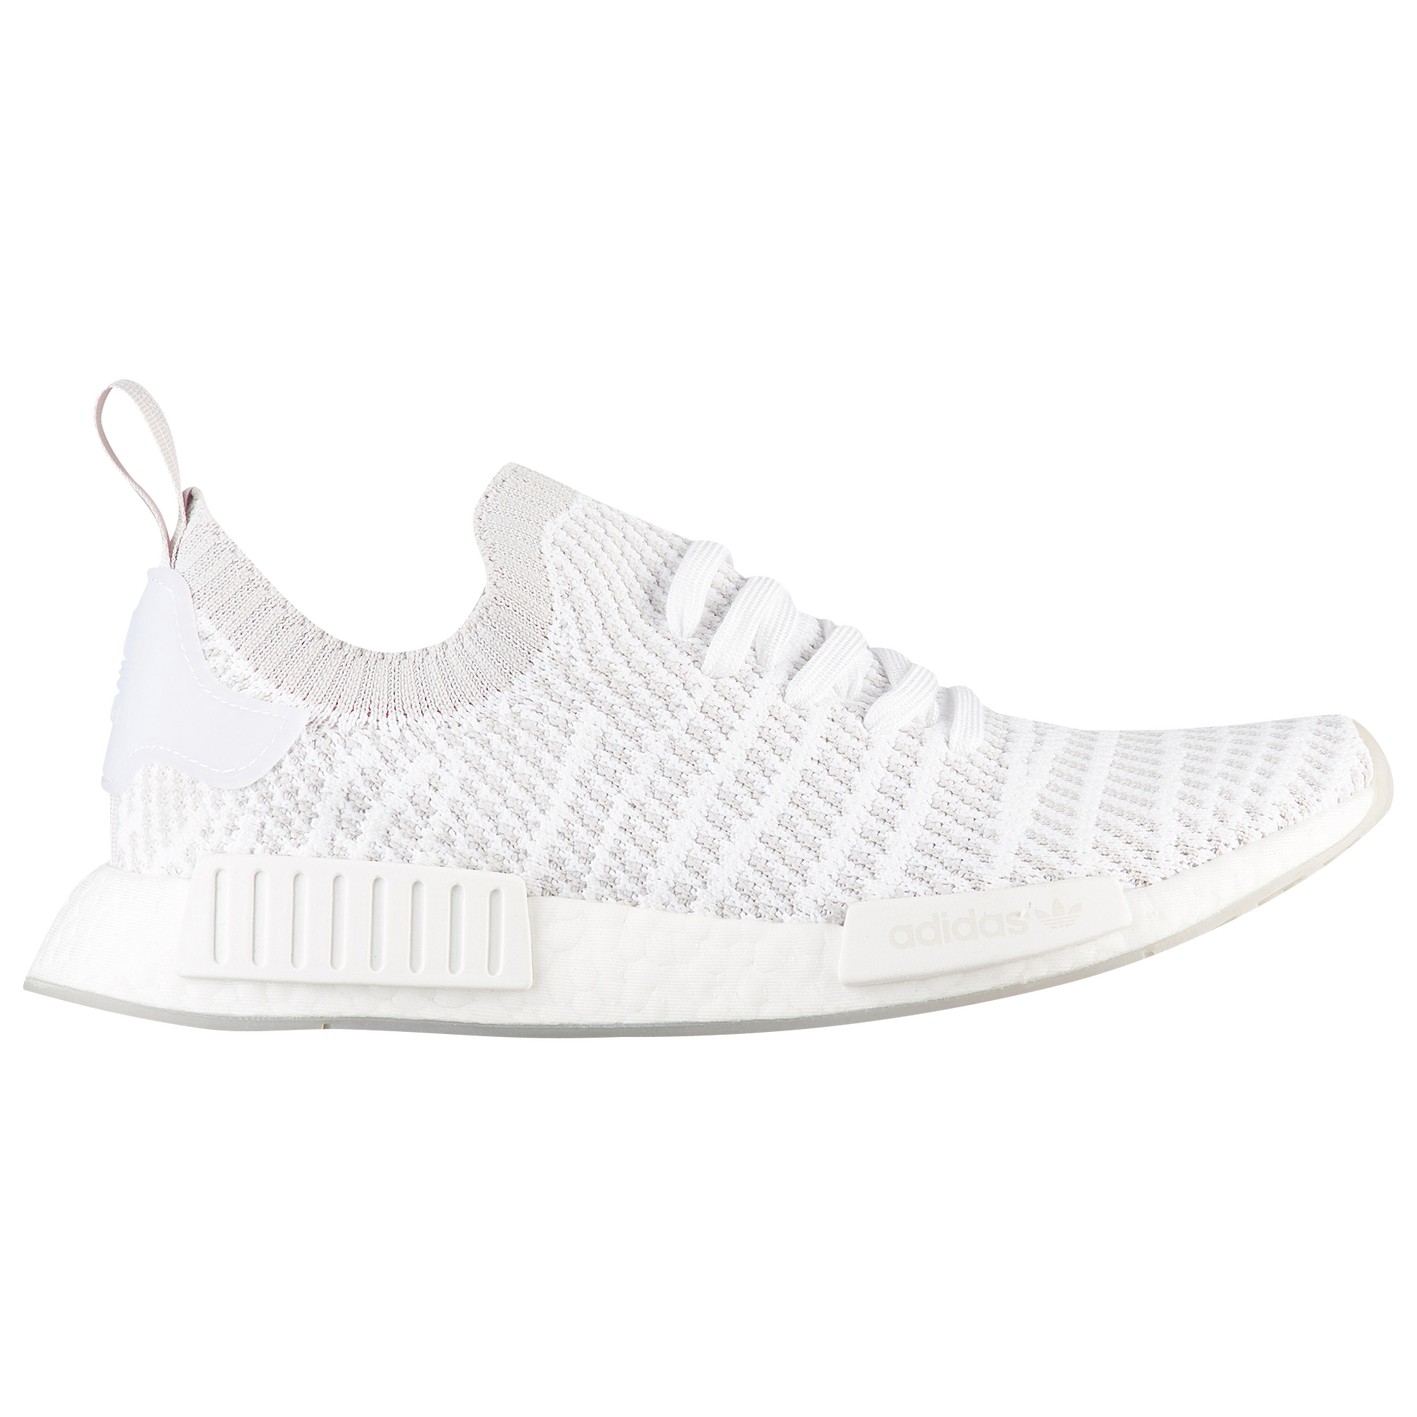 00bf57b8b adidas Originals NMD R1 STLT Primeknit - Men s - Casual - Shoes ...